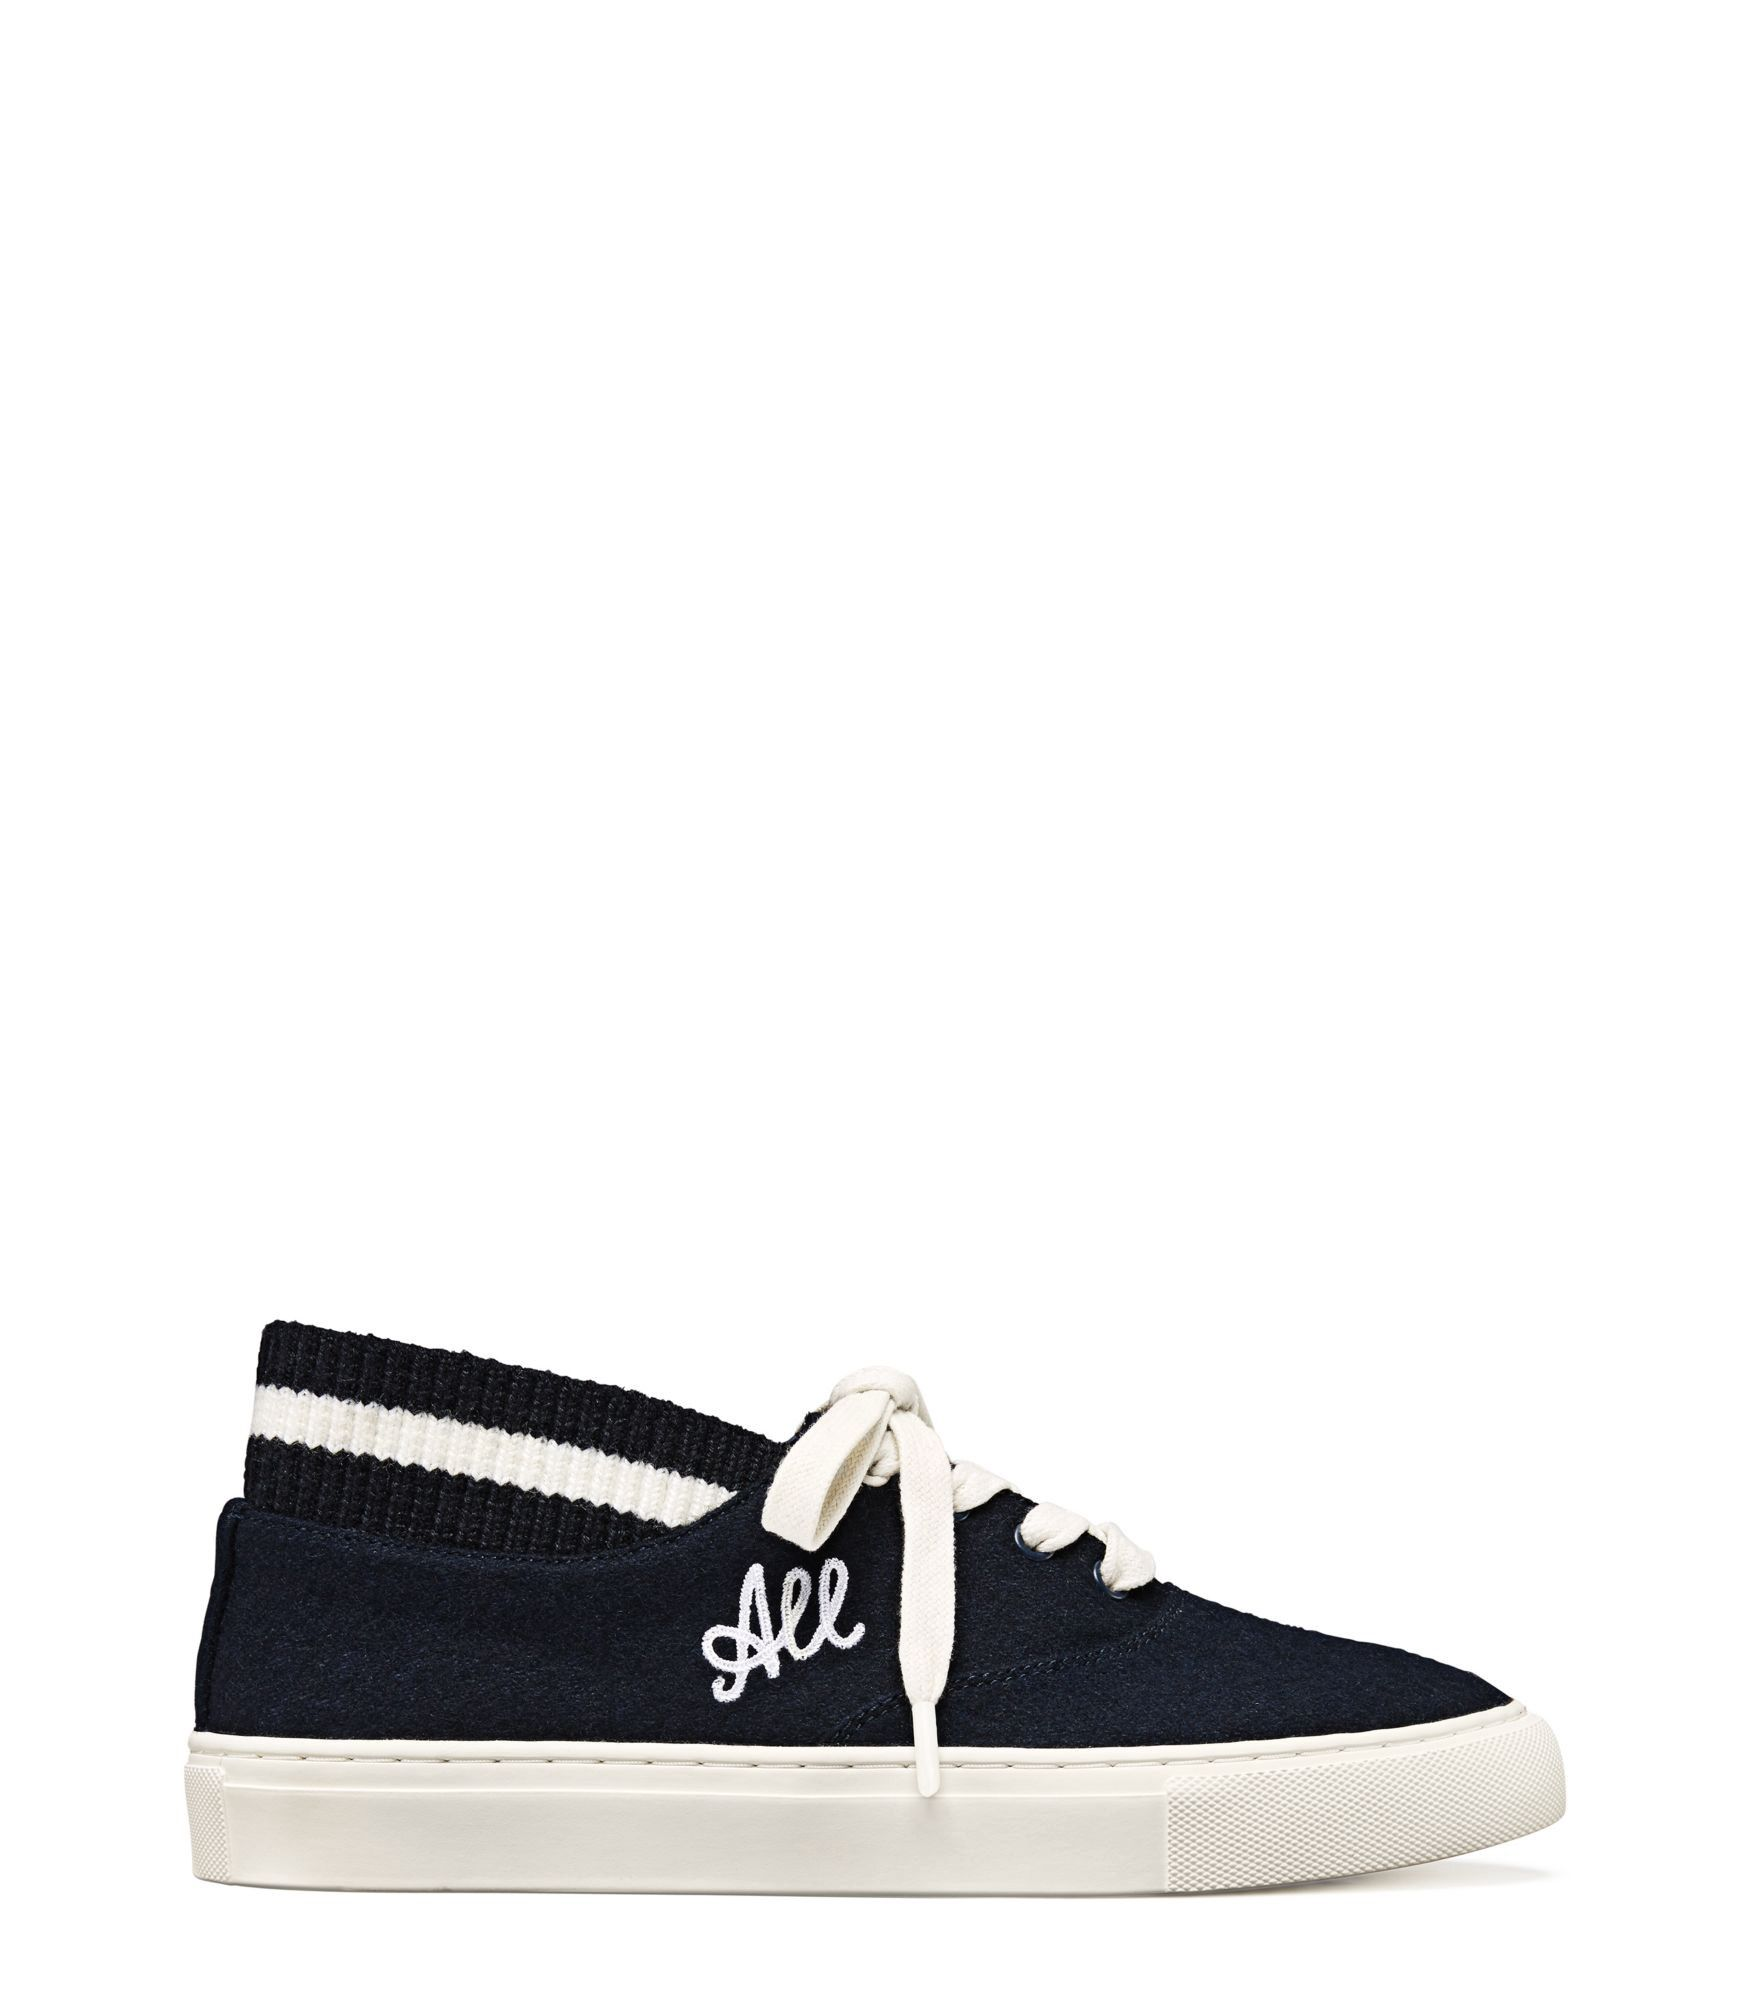 TORY BURCH LOVE ALL SNEAKERS. #toryburch #shoes #